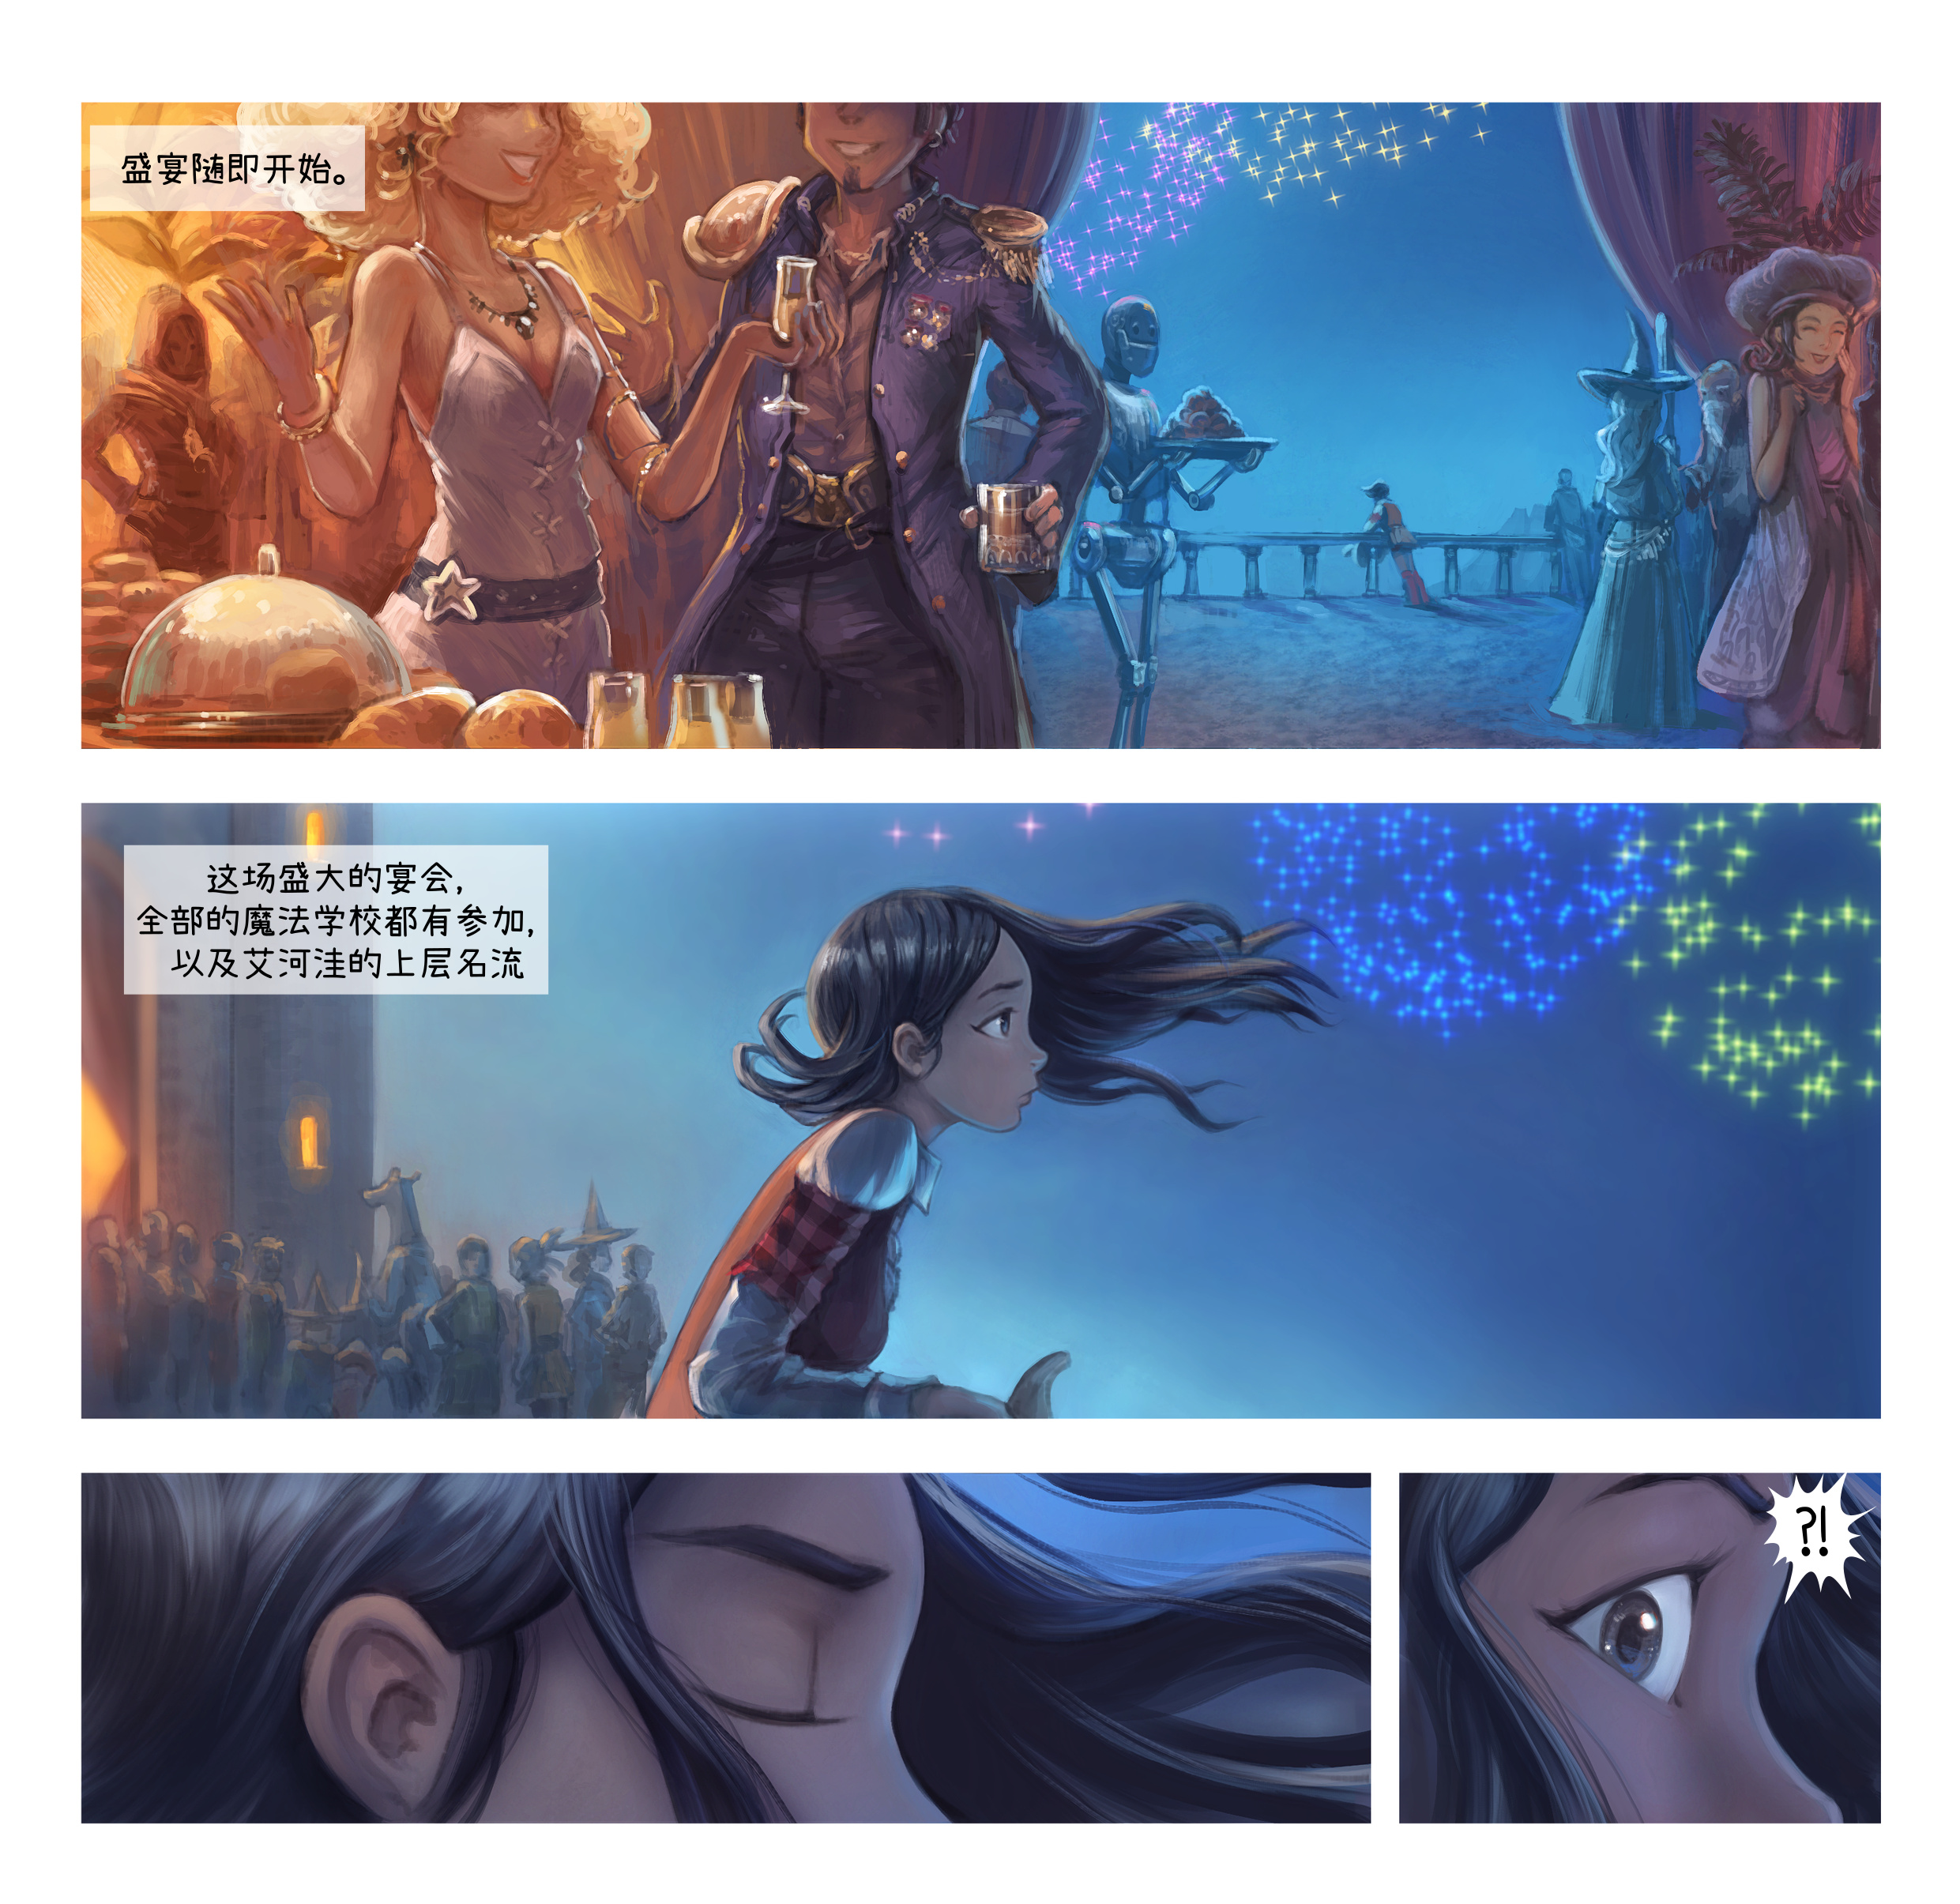 A webcomic page of Pepper&Carrot, 漫画全集 28 [cn], 页面 3